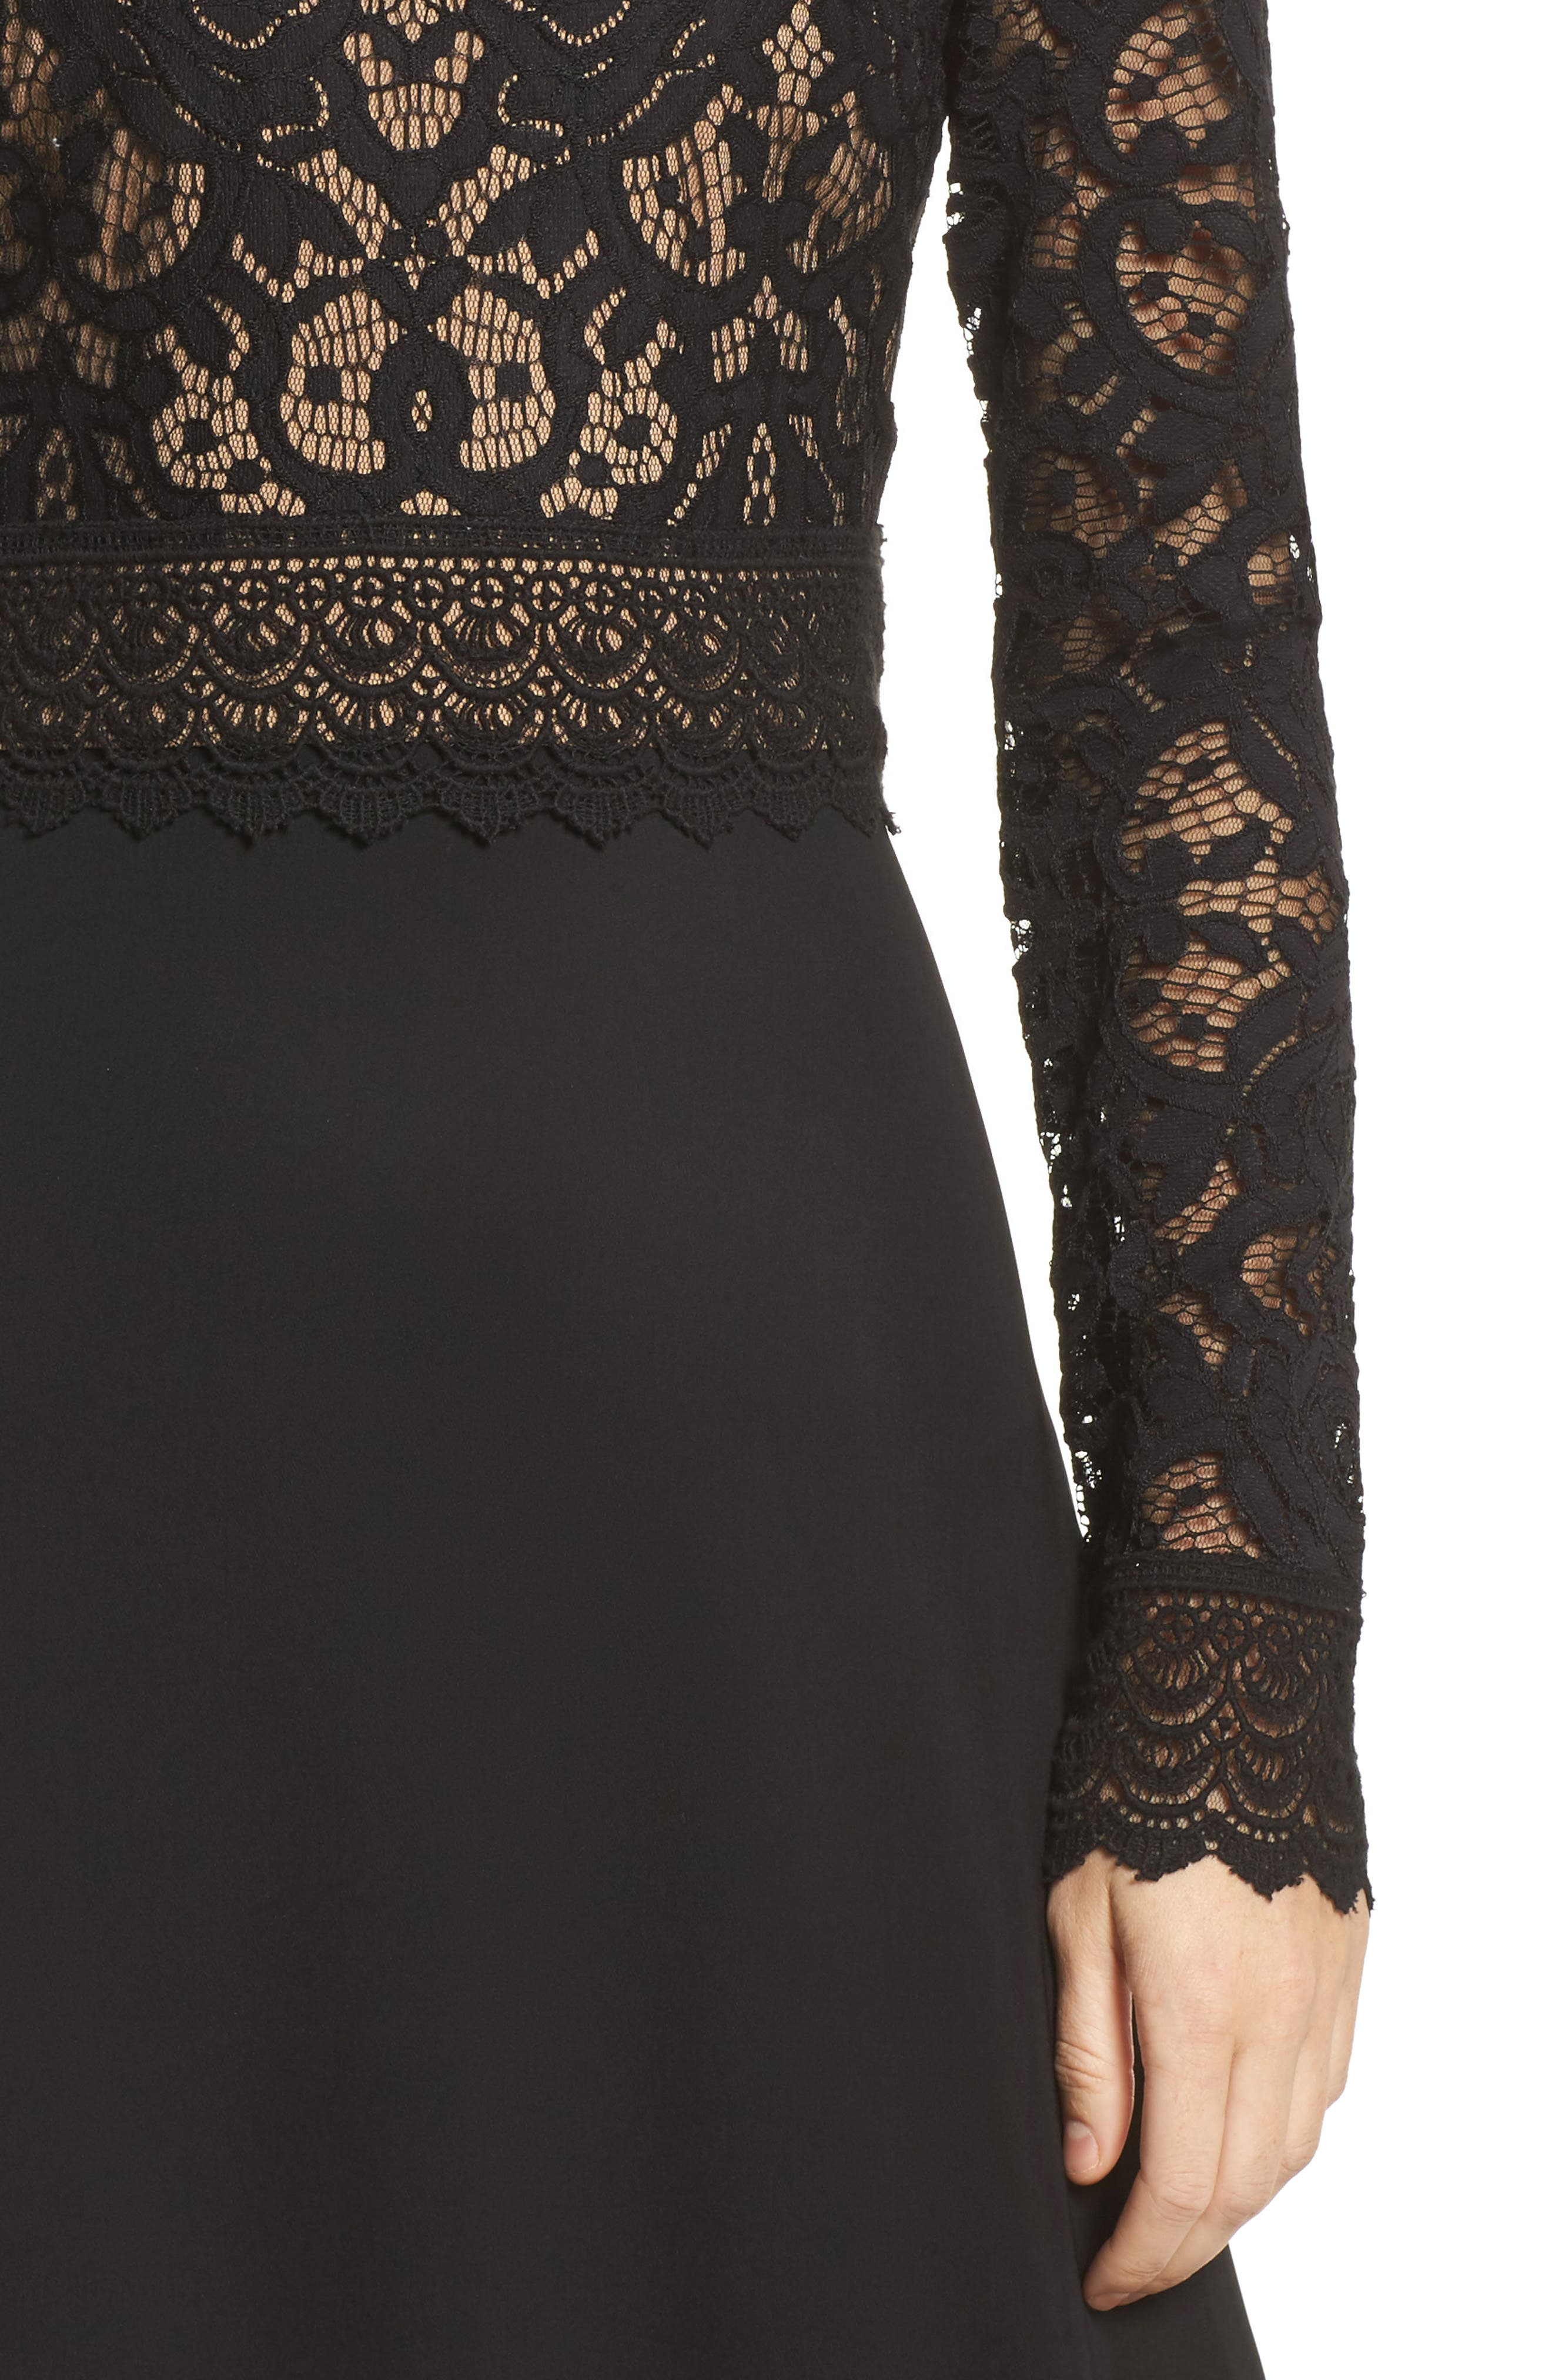 Lace & Crepe Gown,                             Alternate thumbnail 4, color,                             Black/ Nude